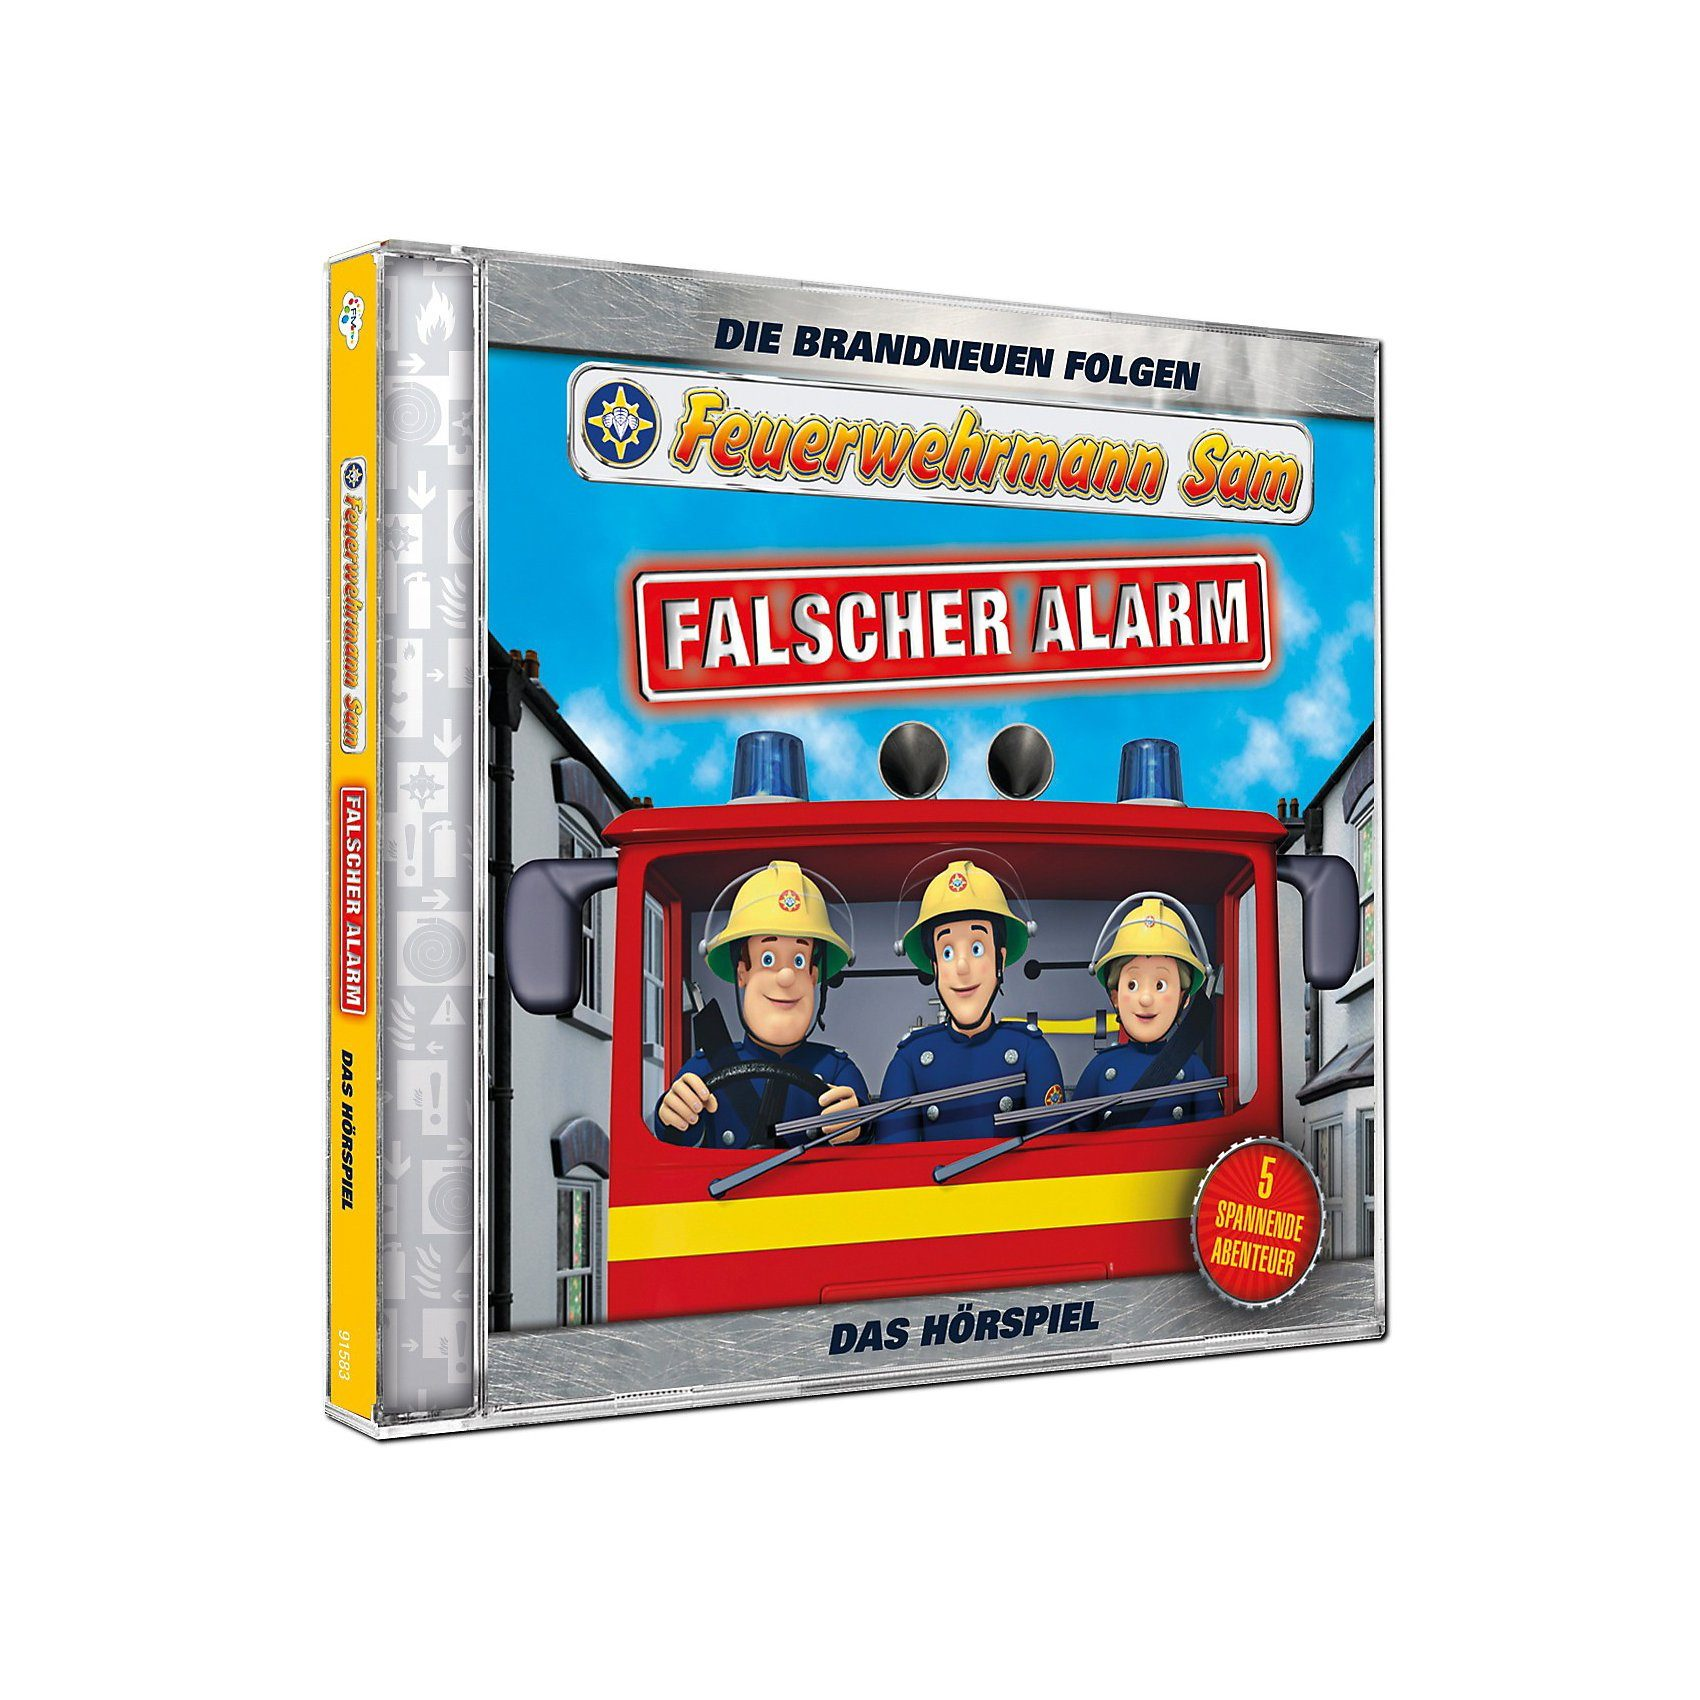 Just Bridge Entertainment CD Feuerwehrmann Sam - Falscher Alarm (Teil 4)